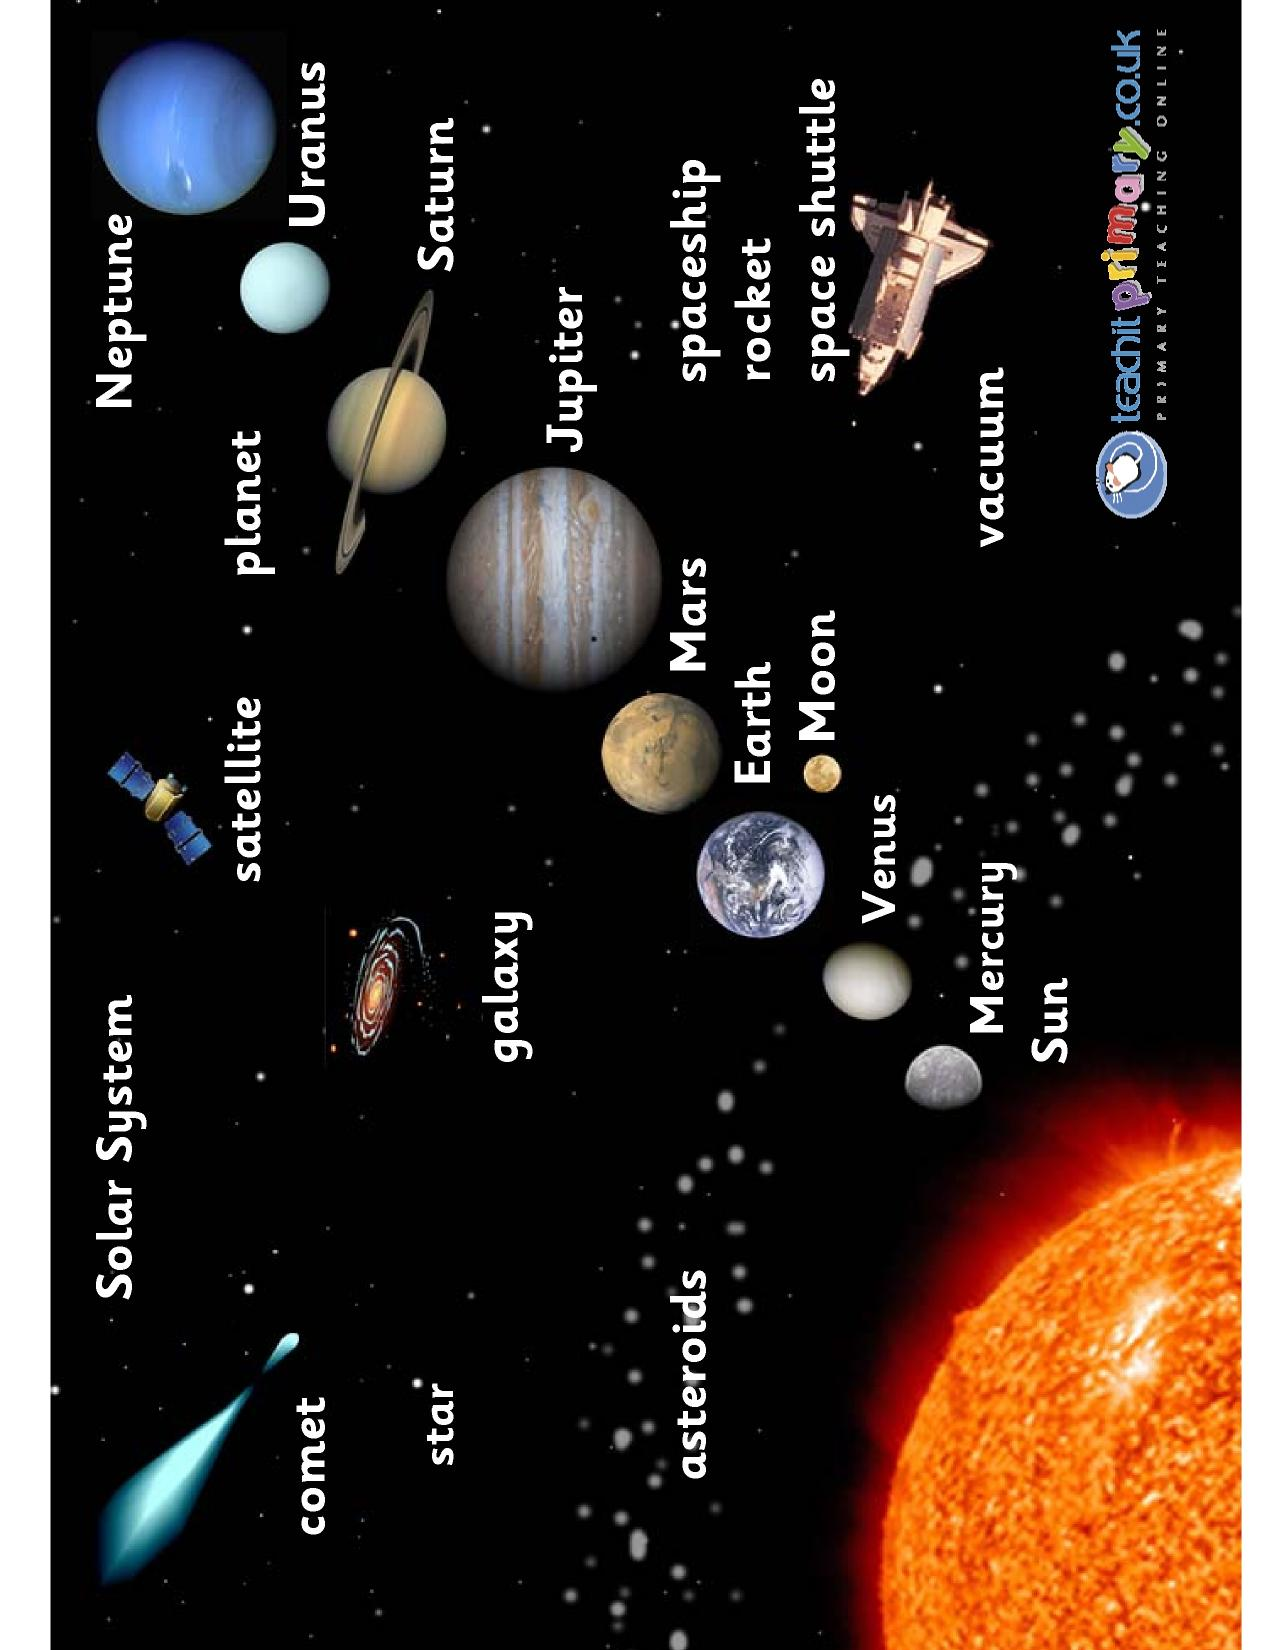 Primary Science Resources For Physical Processes